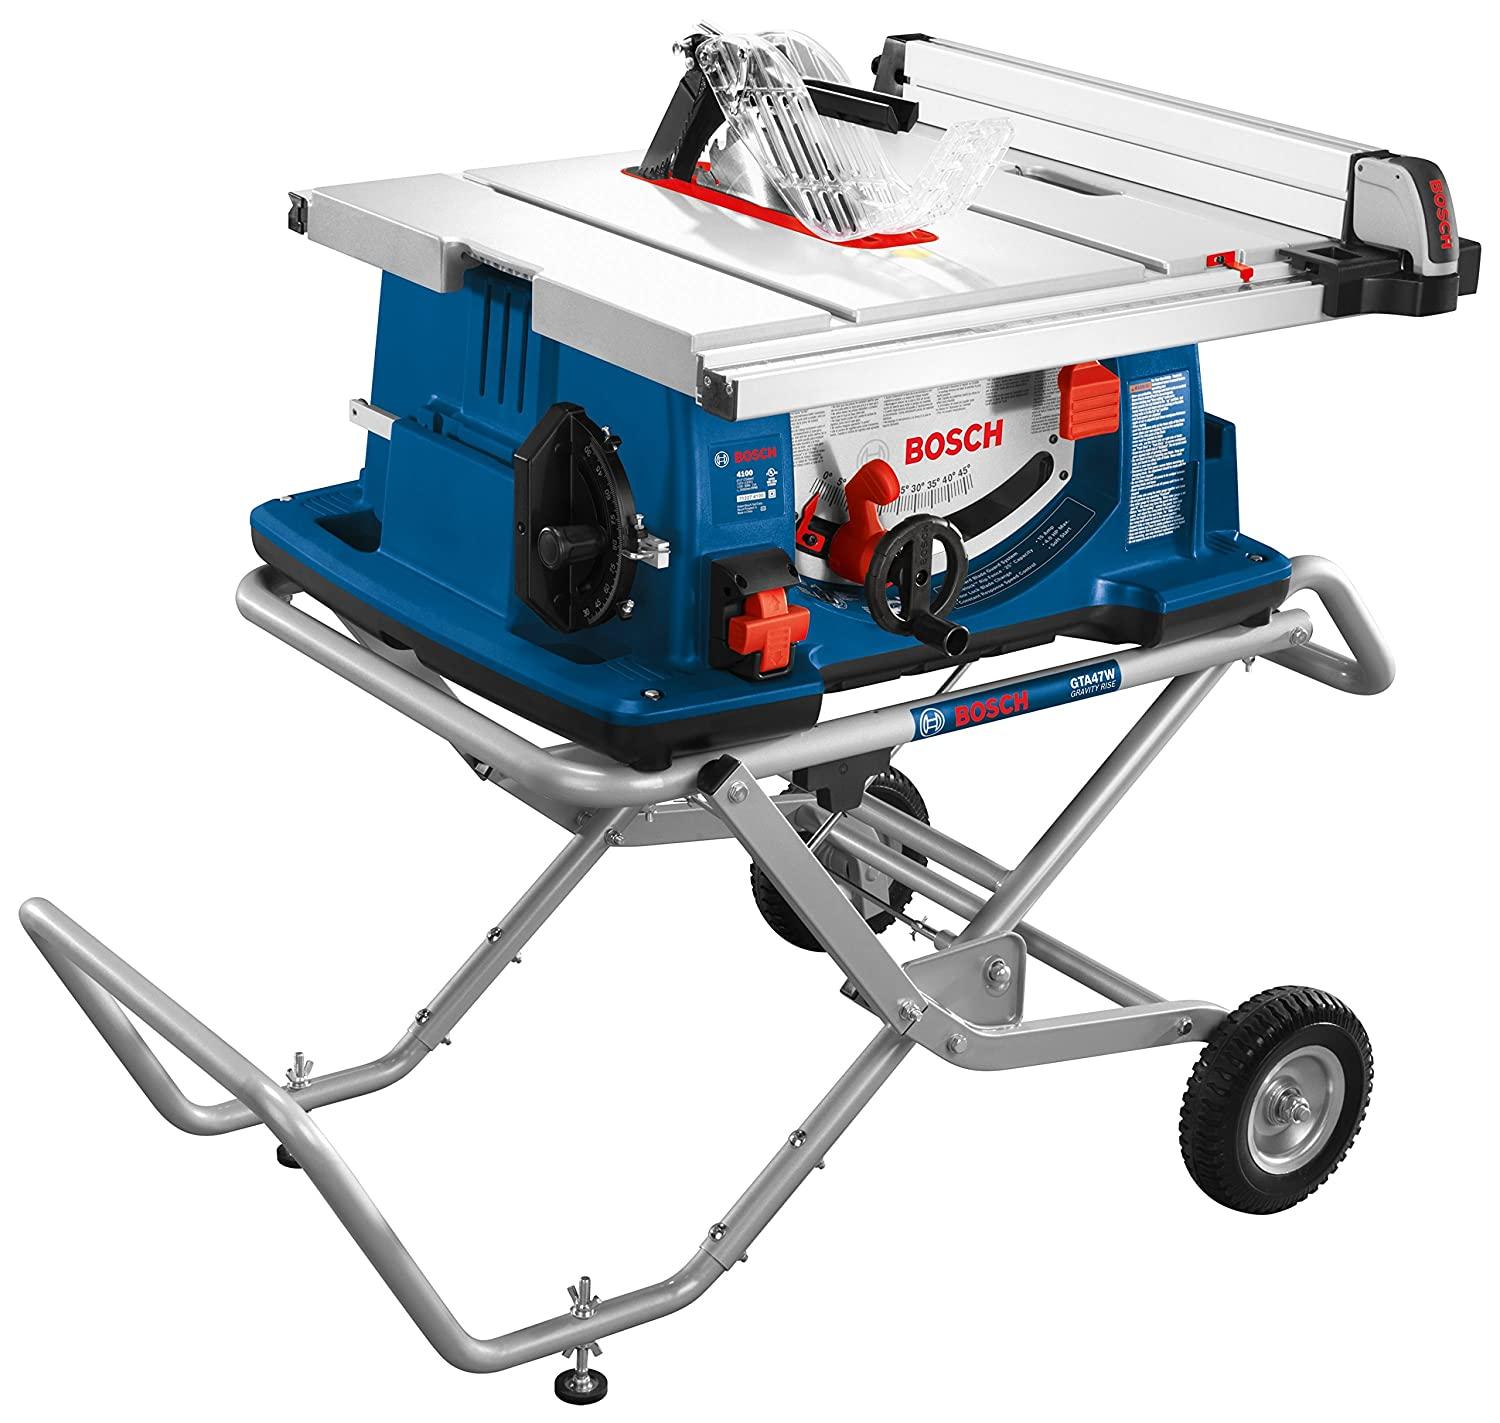 Bosch Power Tools 4100-10 Tablesaw – 10 inch Jobsite Table Saw with 25 Inch Cutting Capacity and Portable Folding Table Stand